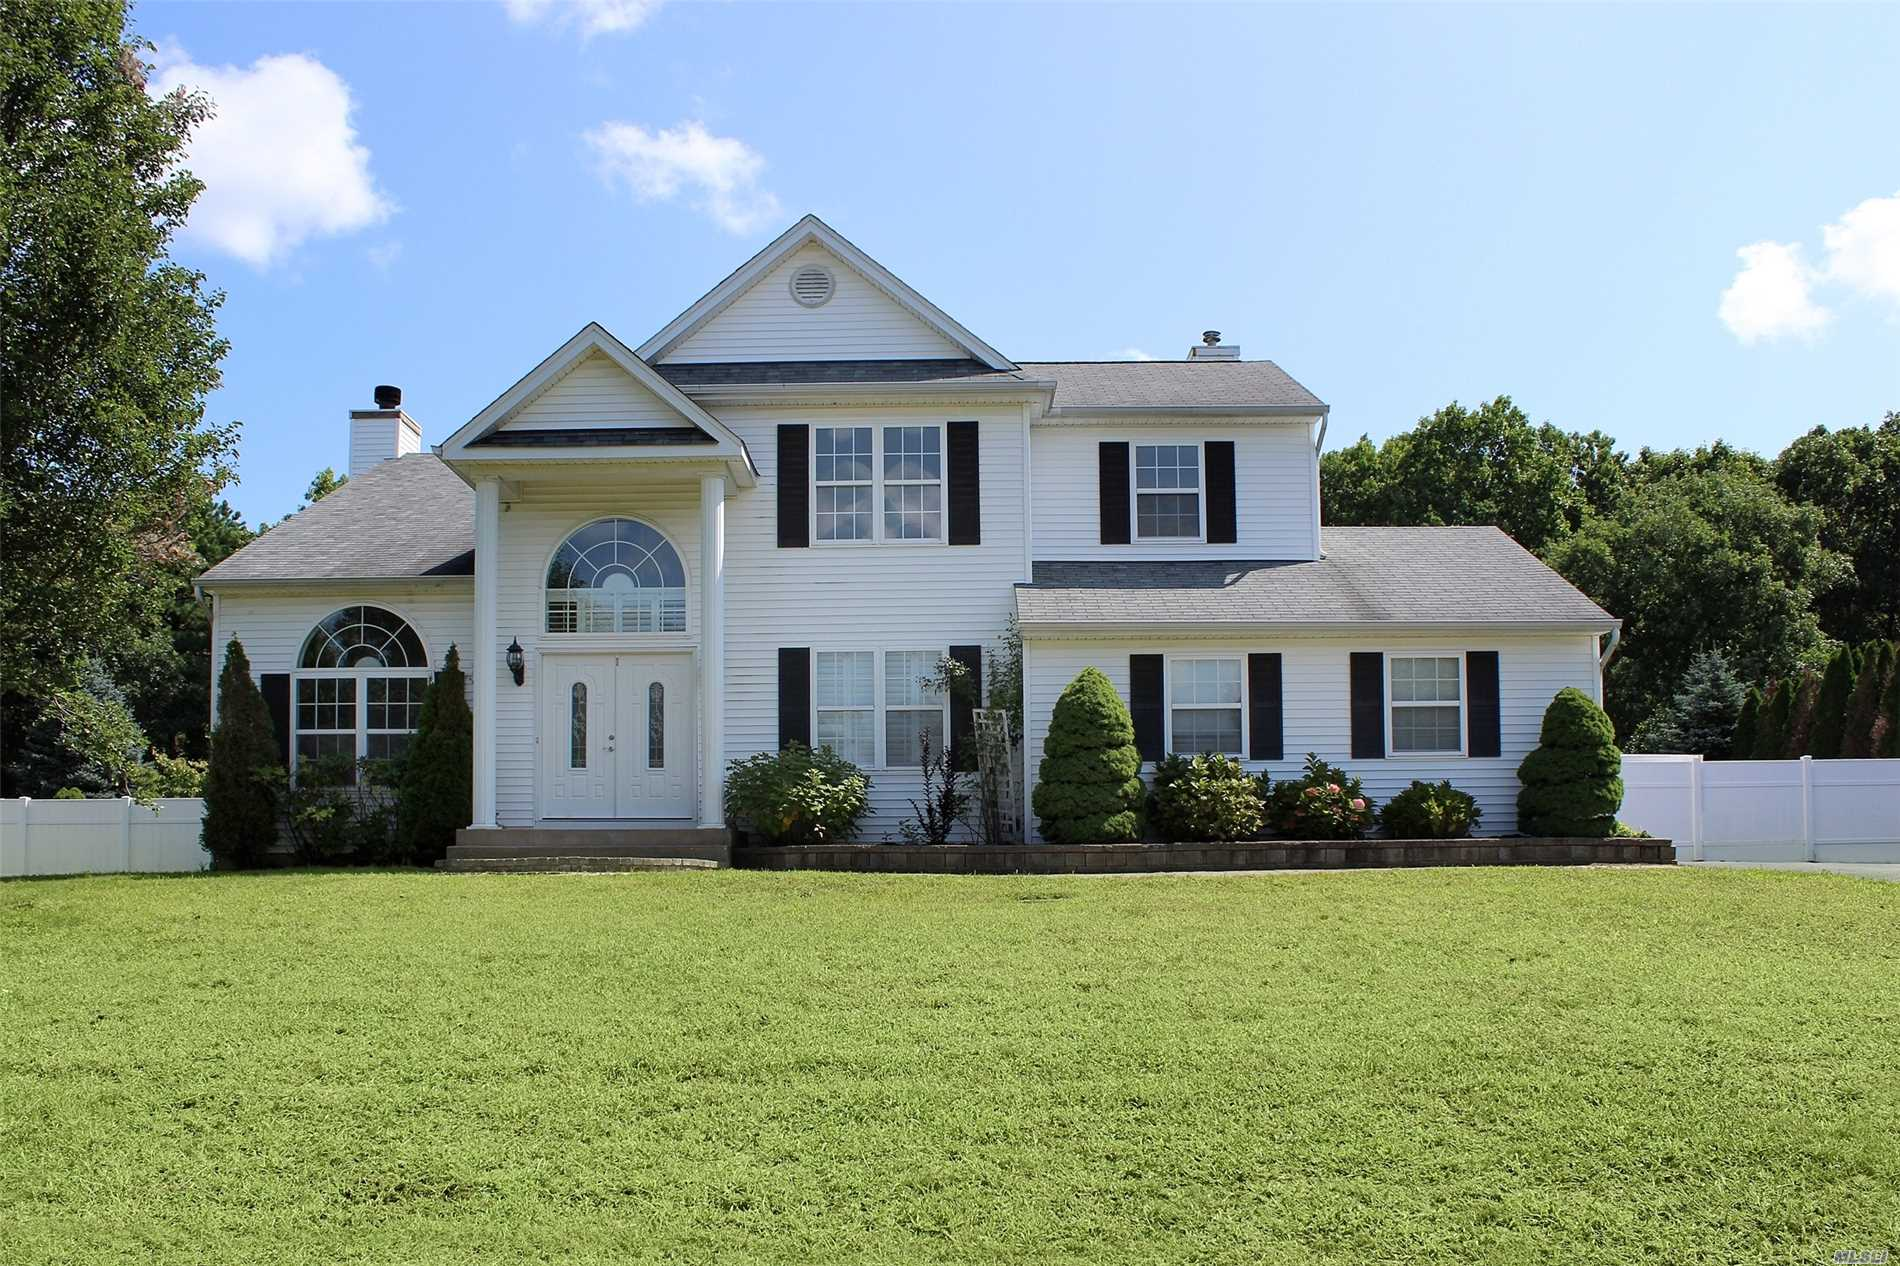 Home Beautifully Redone/Hardwood N Porcelain Floors/Marble Fireplace/Lg Eik W/Center Island/Granite N Stainless Apples/Vaulted Ceilings/Full Finished Name W/Fbth/Mate W/ Fbth N High Ceiling/ 3 Lg Bdrms/Fam Bth/Cac/Igs/ Lg Flat Yard Backs Preserve Lots Of Privacy/Lots Of Space!